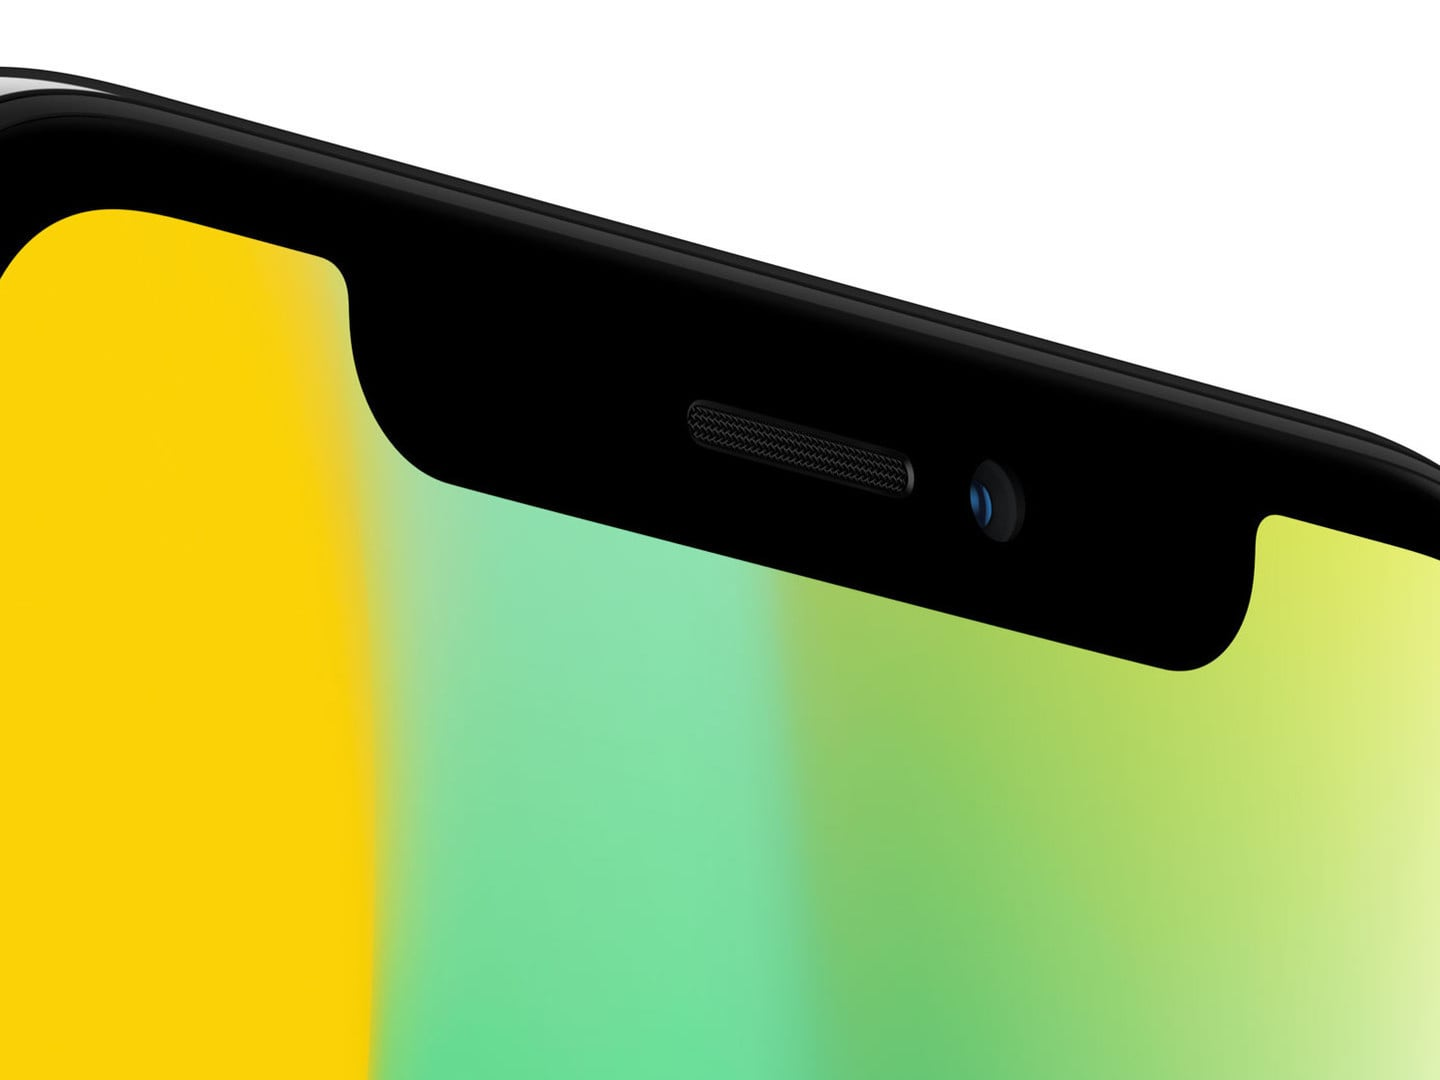 IPhone Rumors: Apple Is Doing Something About That Notch